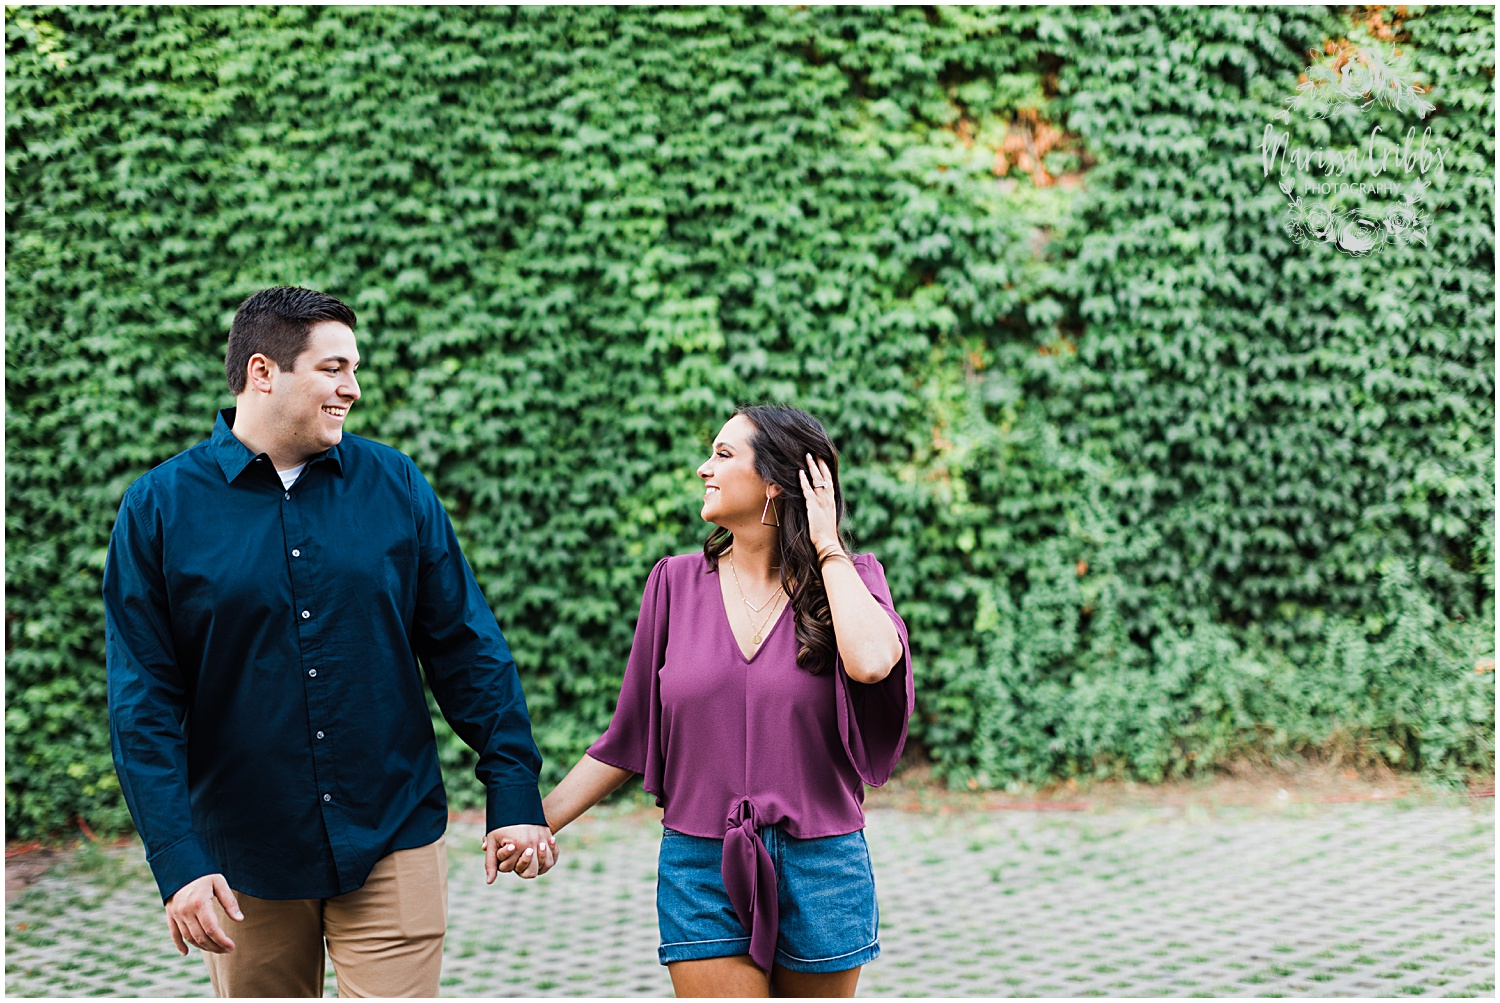 MORGAN & KEVIN ENGAGEMENT BLOG | MARISSA CRIBBS PHOTOGRAPHY_8288.jpg